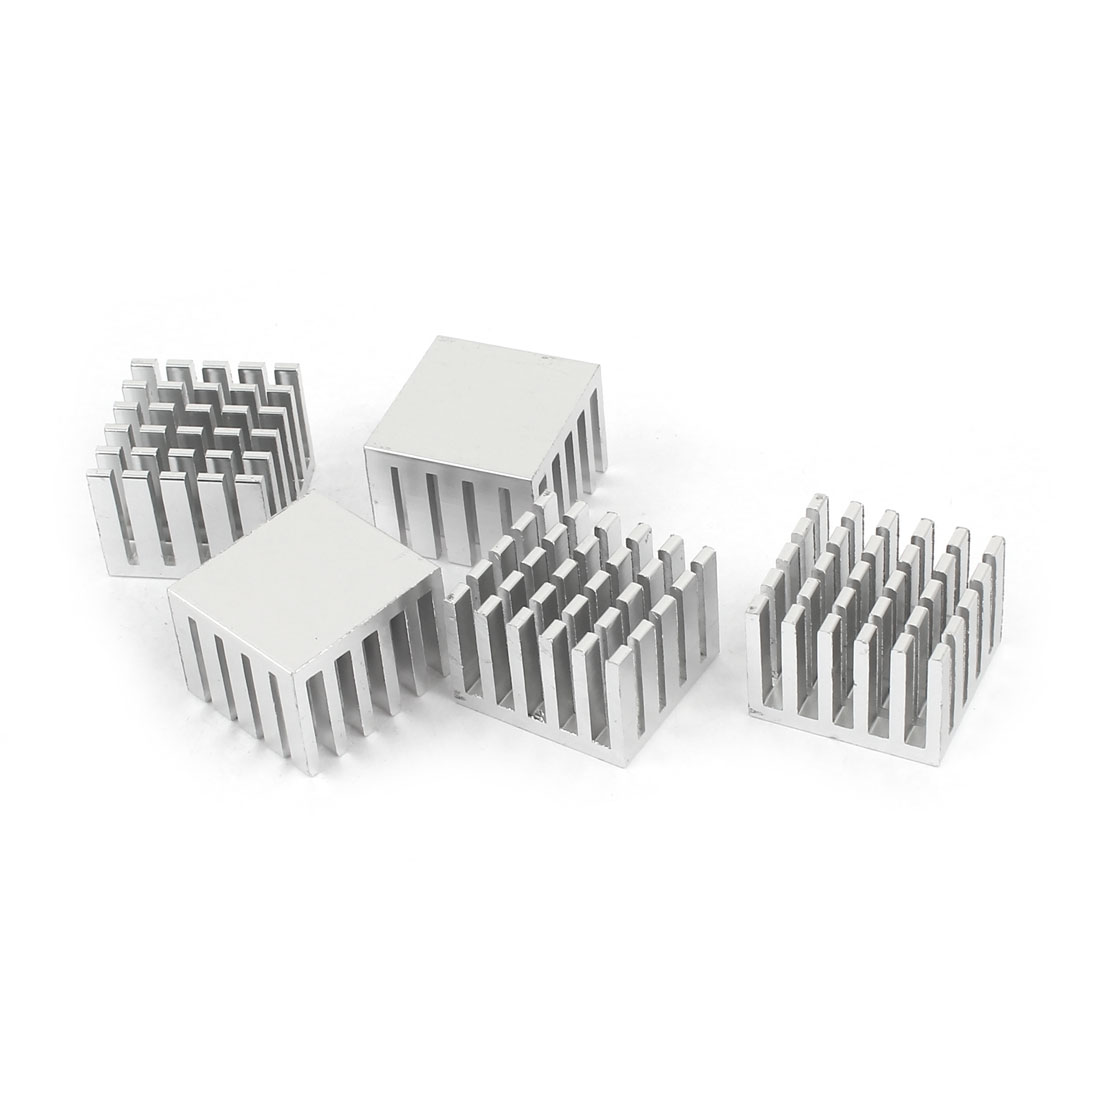 5 Pcs Silver Tone Aluminum Cooler Radiator Heat Sink Heatsink 20mm x 21mm x 15mm